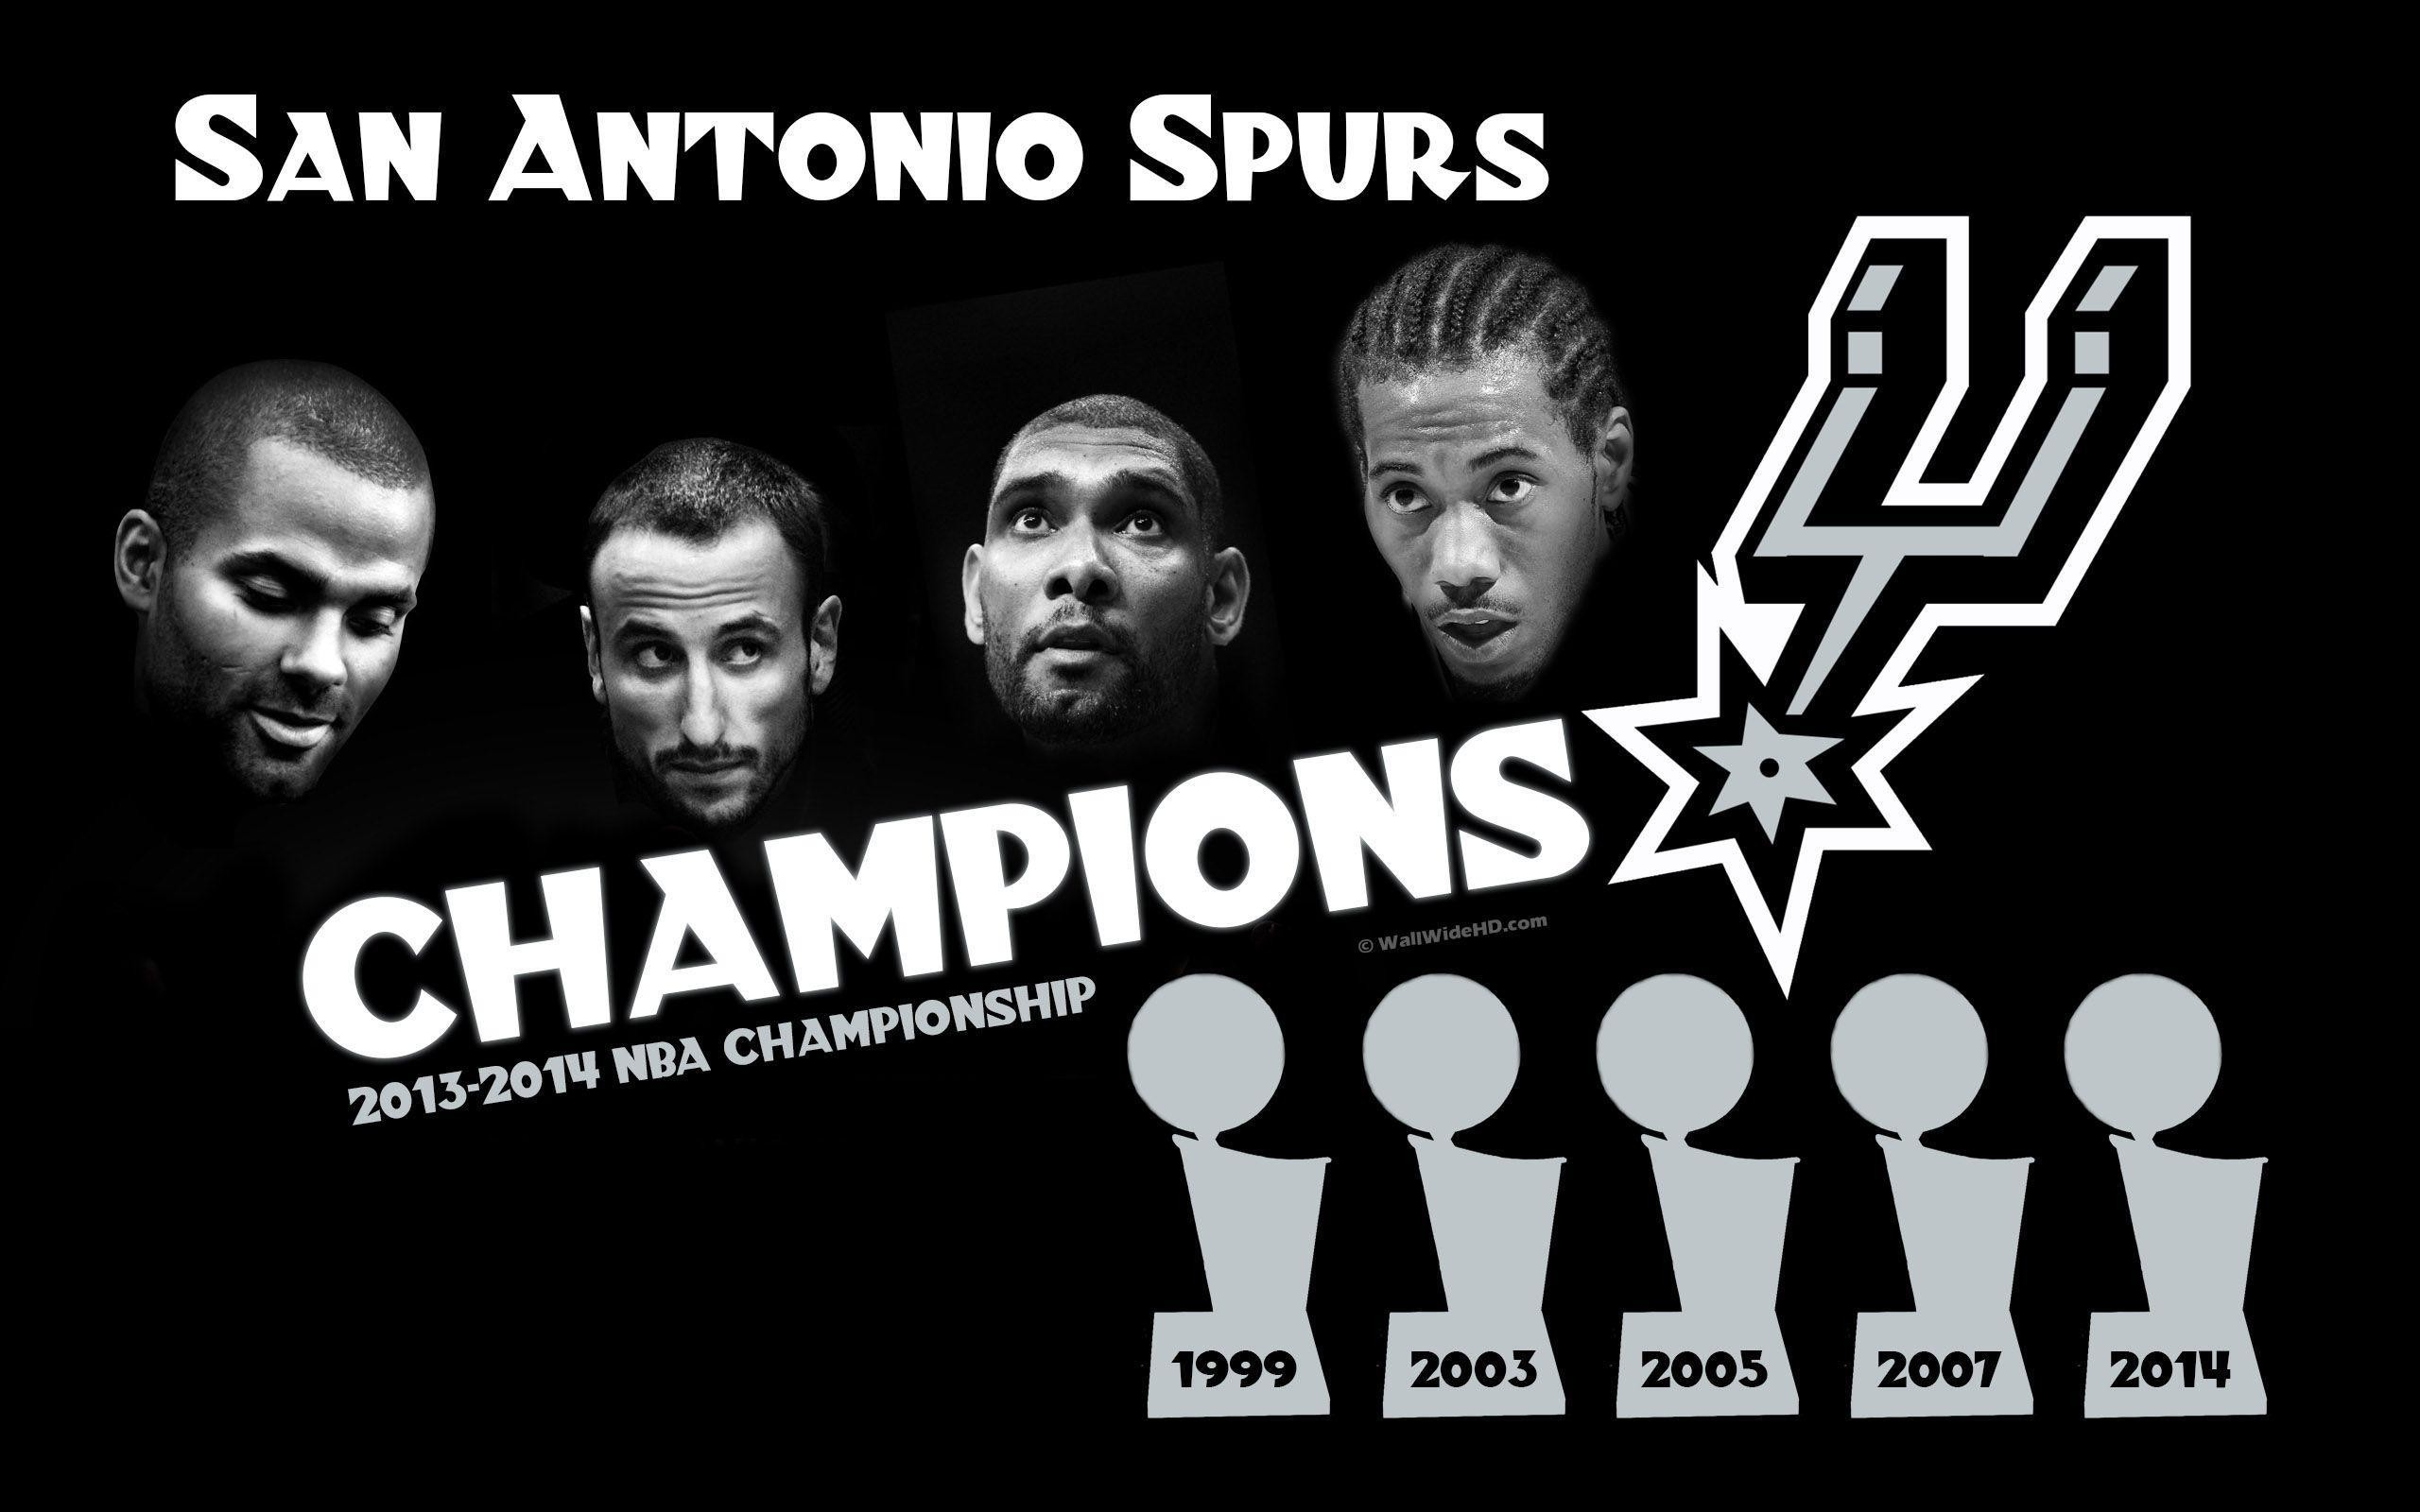 San Antonio Spurs Wallpaper - The Wallpaper Manu Ginobili Wallpapers Group (